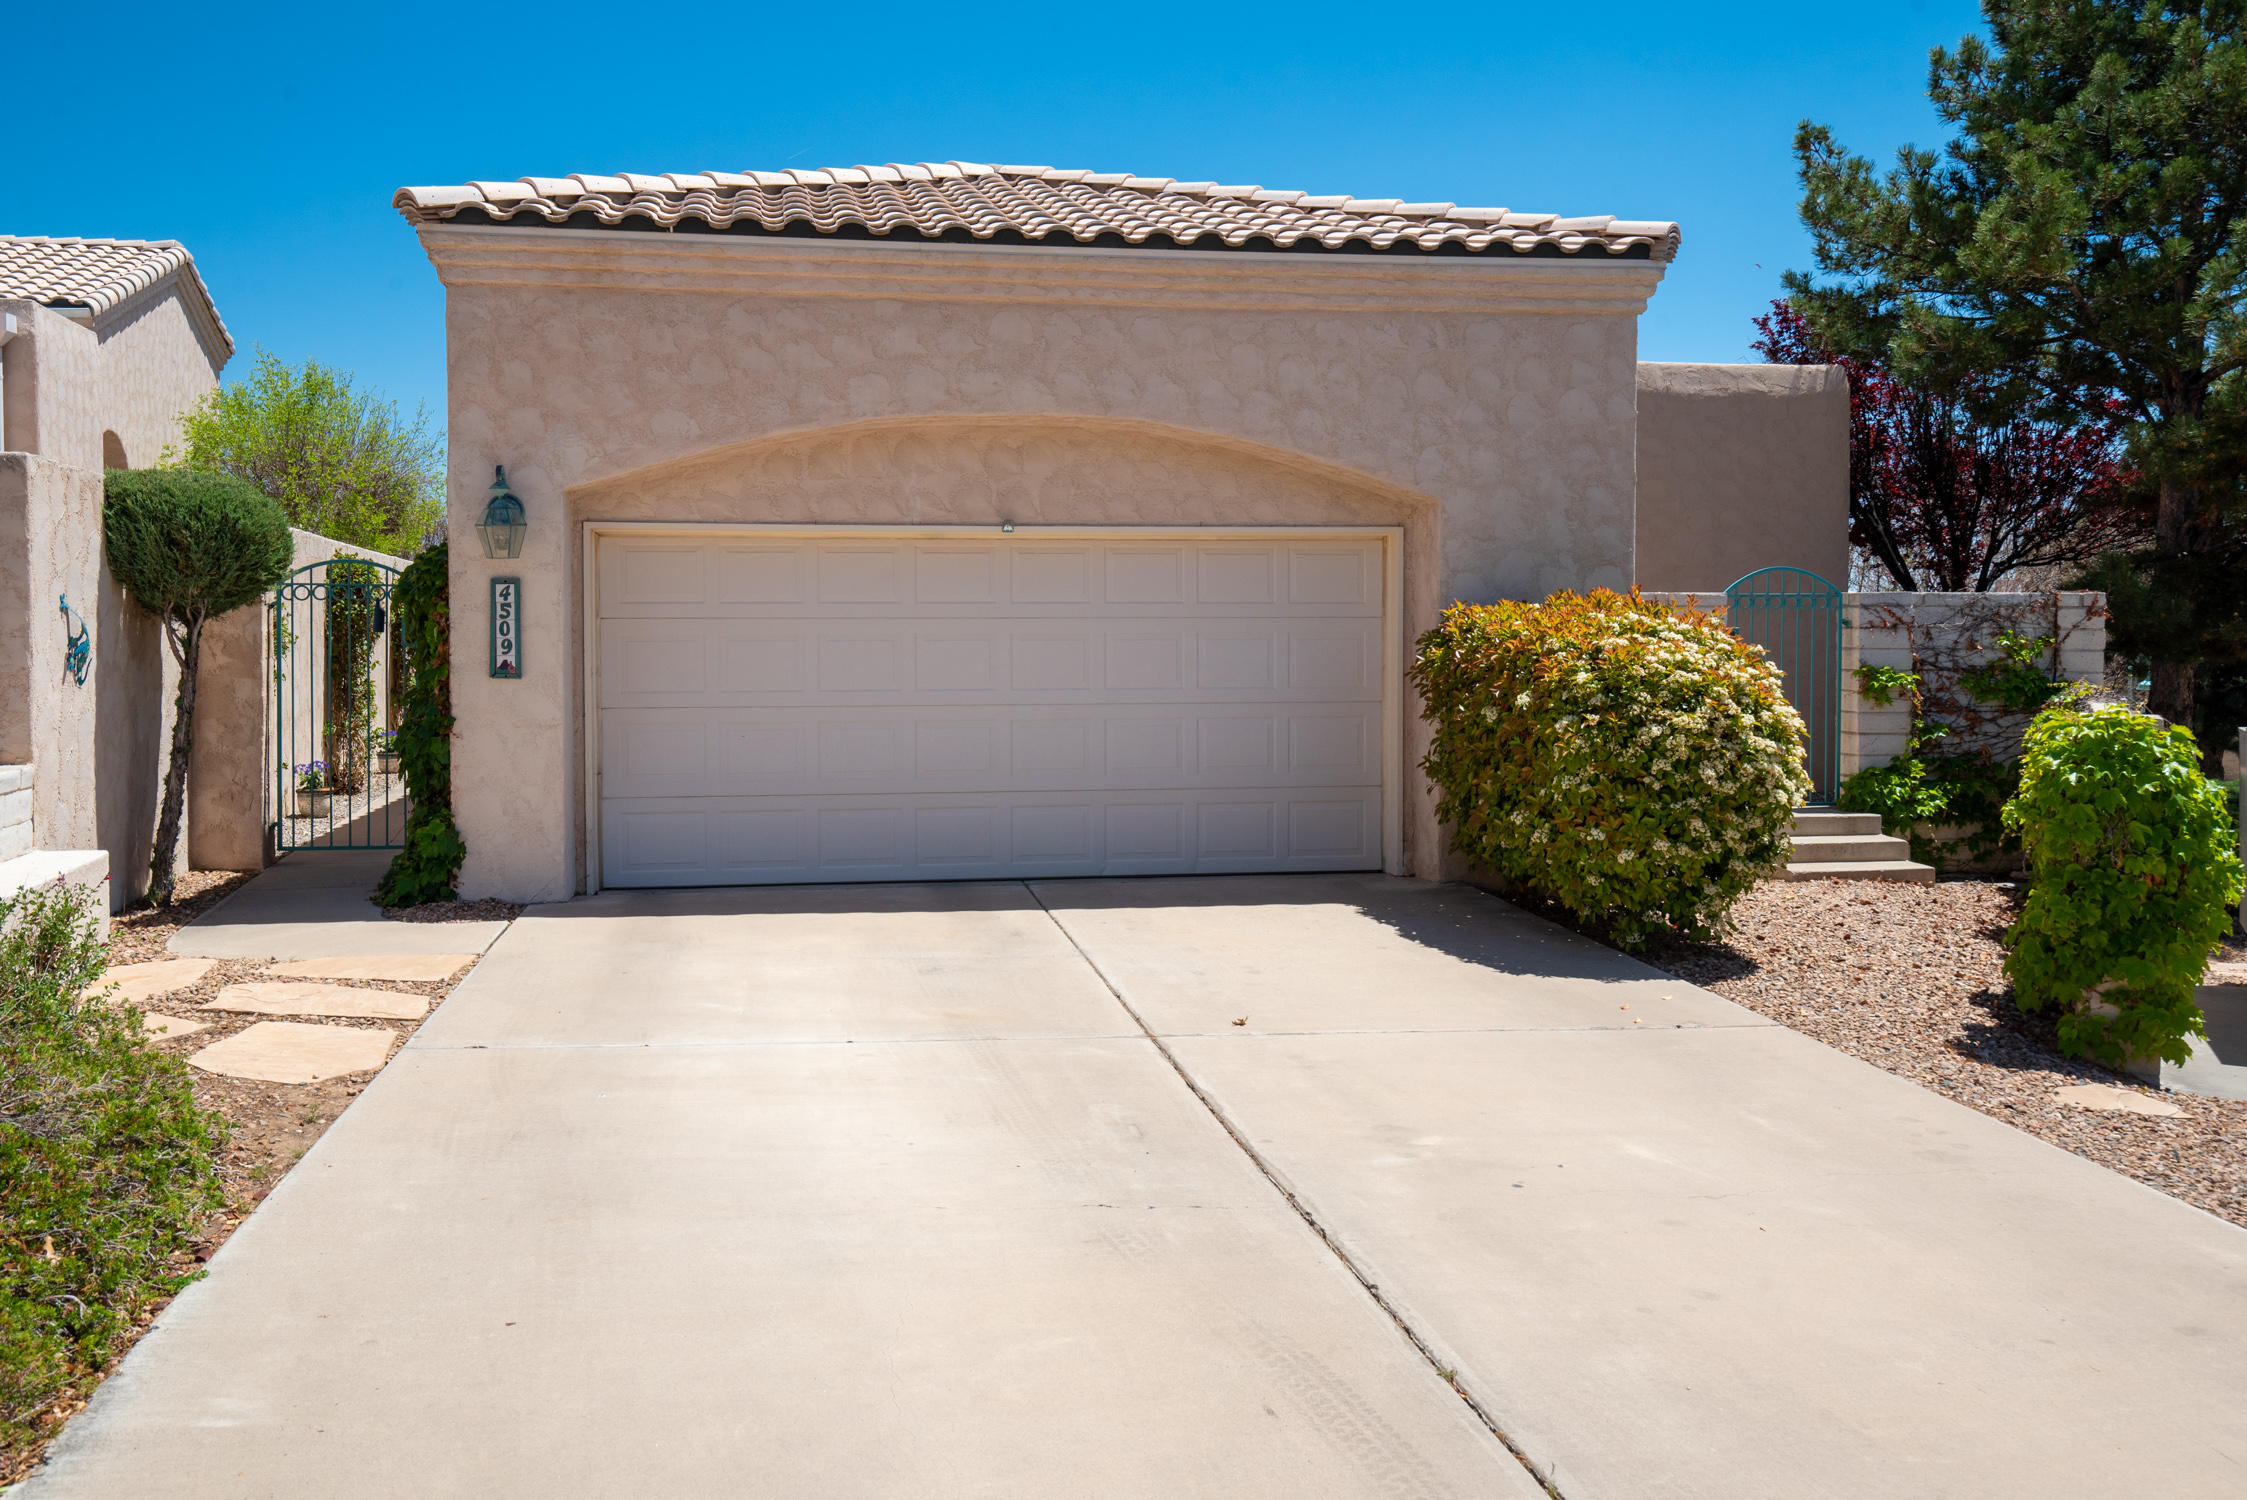 Custom built Leslie Home in gated community on premium corner lot with incredible VIEWS. Detached garden home/totally free standing. Featuring high ceilings & floor to ceiling windows in the open & bright great room w/custom fireplace & huge dining area. Gourmet kitchen w/large walk-in pantry; island; & abundant counter & cabinet space. Master suite features luxurious en suite separate from other bedrooms. Oversized garage with large loft storage area. Roof redone in 2019. 3 covered patios & low maintenance professional landscaping.